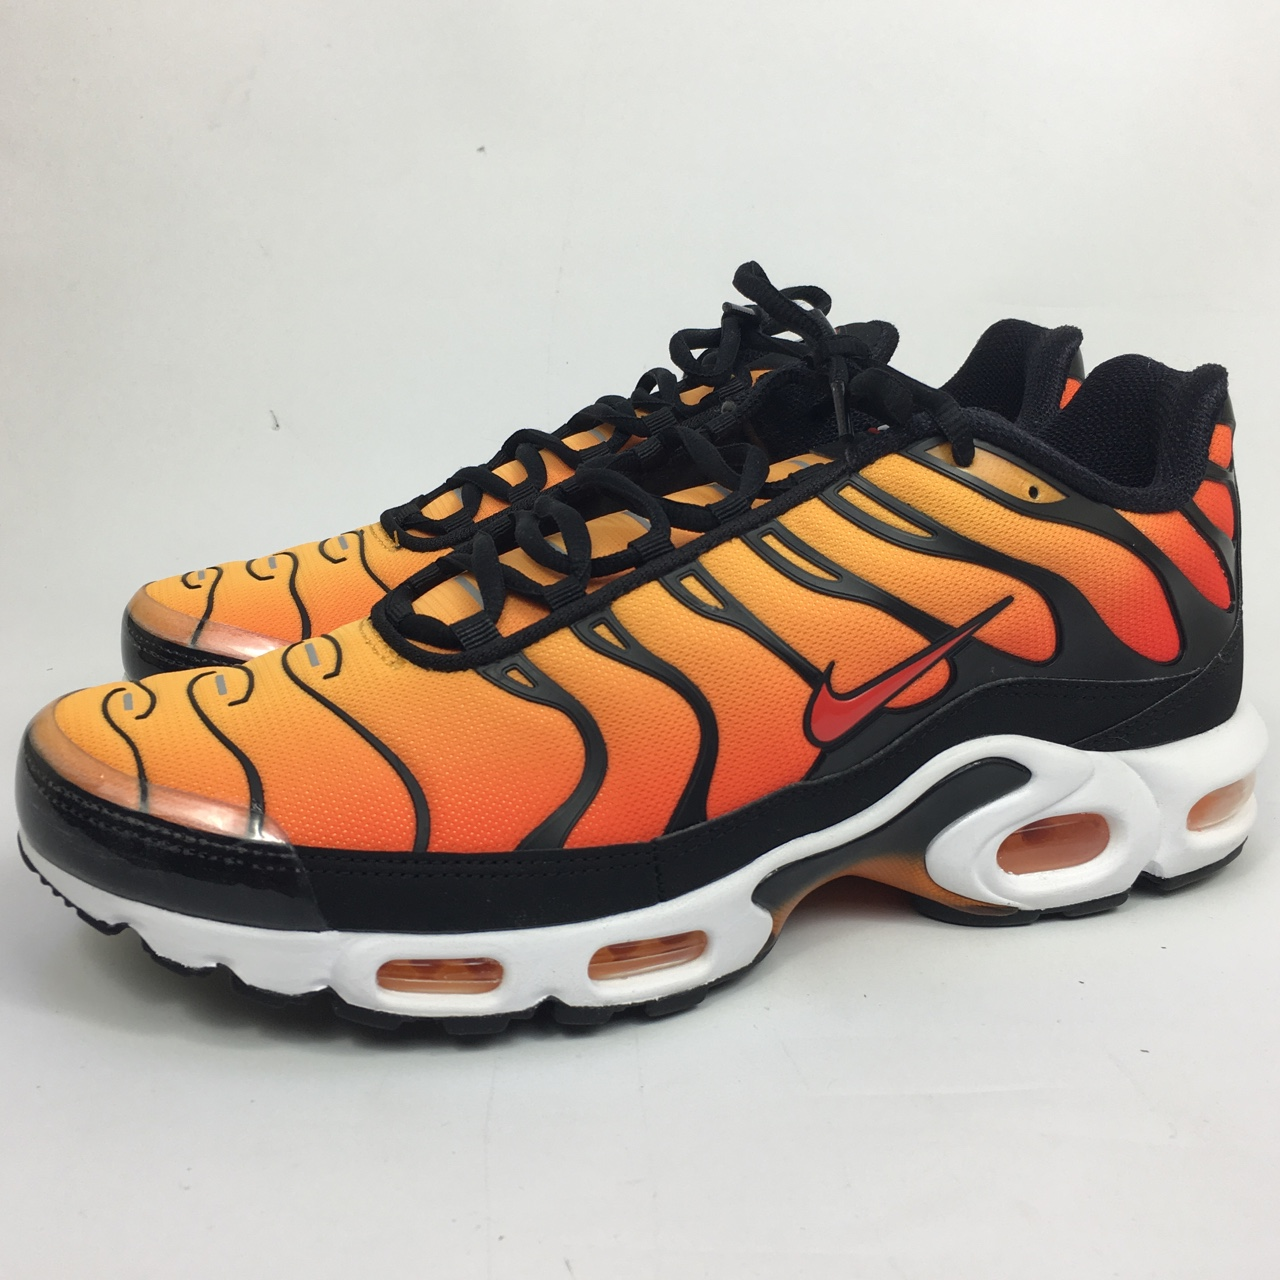 "promo code 2c233 a9797 Nike Air Max Plus TN OG ""Tiger"" - Size UK 11 - These... - Depop"